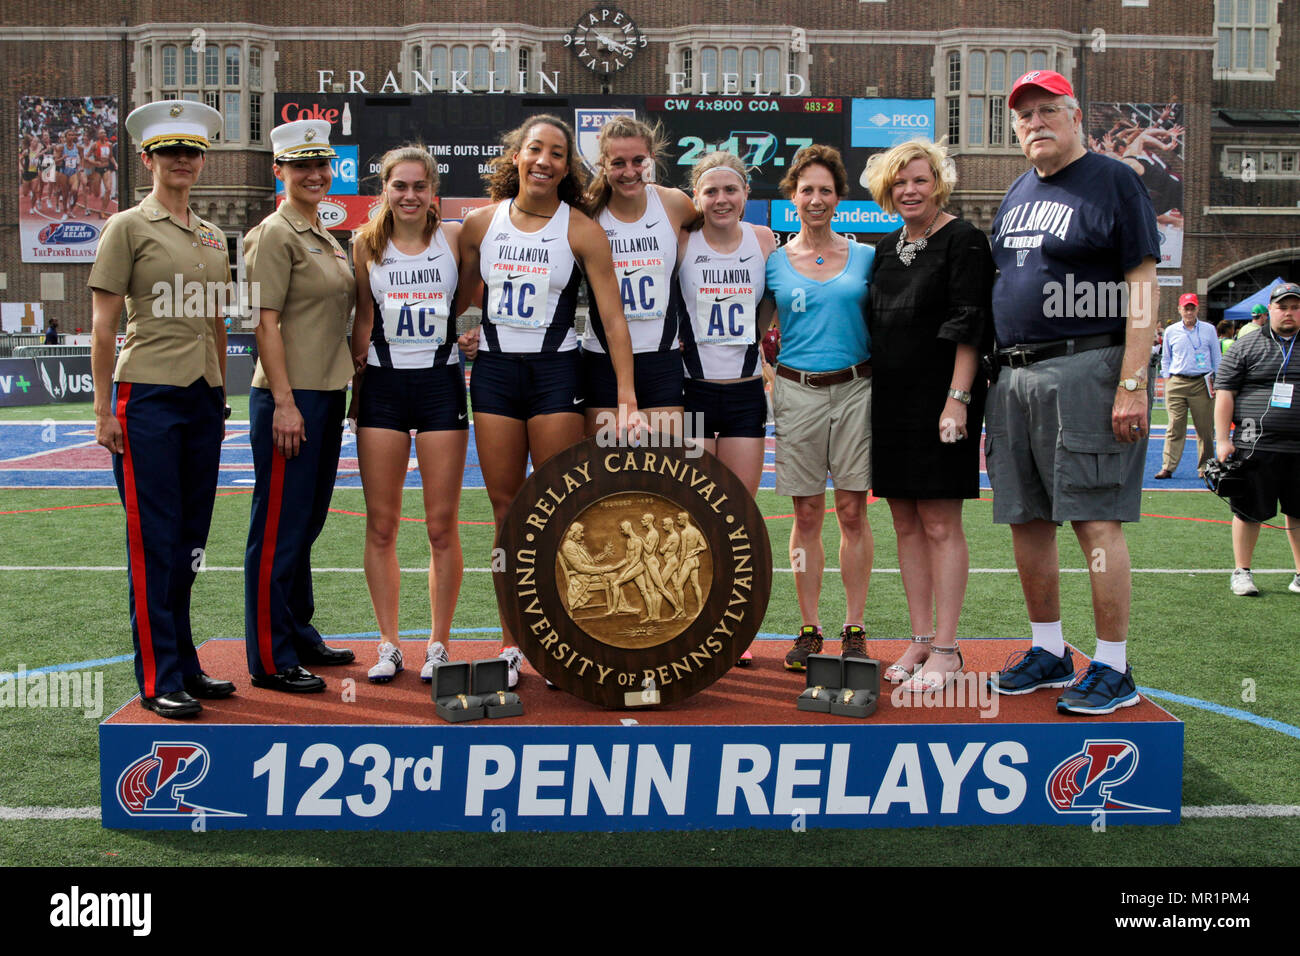 U.S. Marines present awards to the winners of the college women's 4x800 Champions of America Invitational during the 2017 Penn Relays in Philadelphia, April 29. The winners of the race are from Villanova University. The Penn Relays are the world's largest relay meet which has drawn crowds over 100,000 strong each year for the last decade. - Stock Image